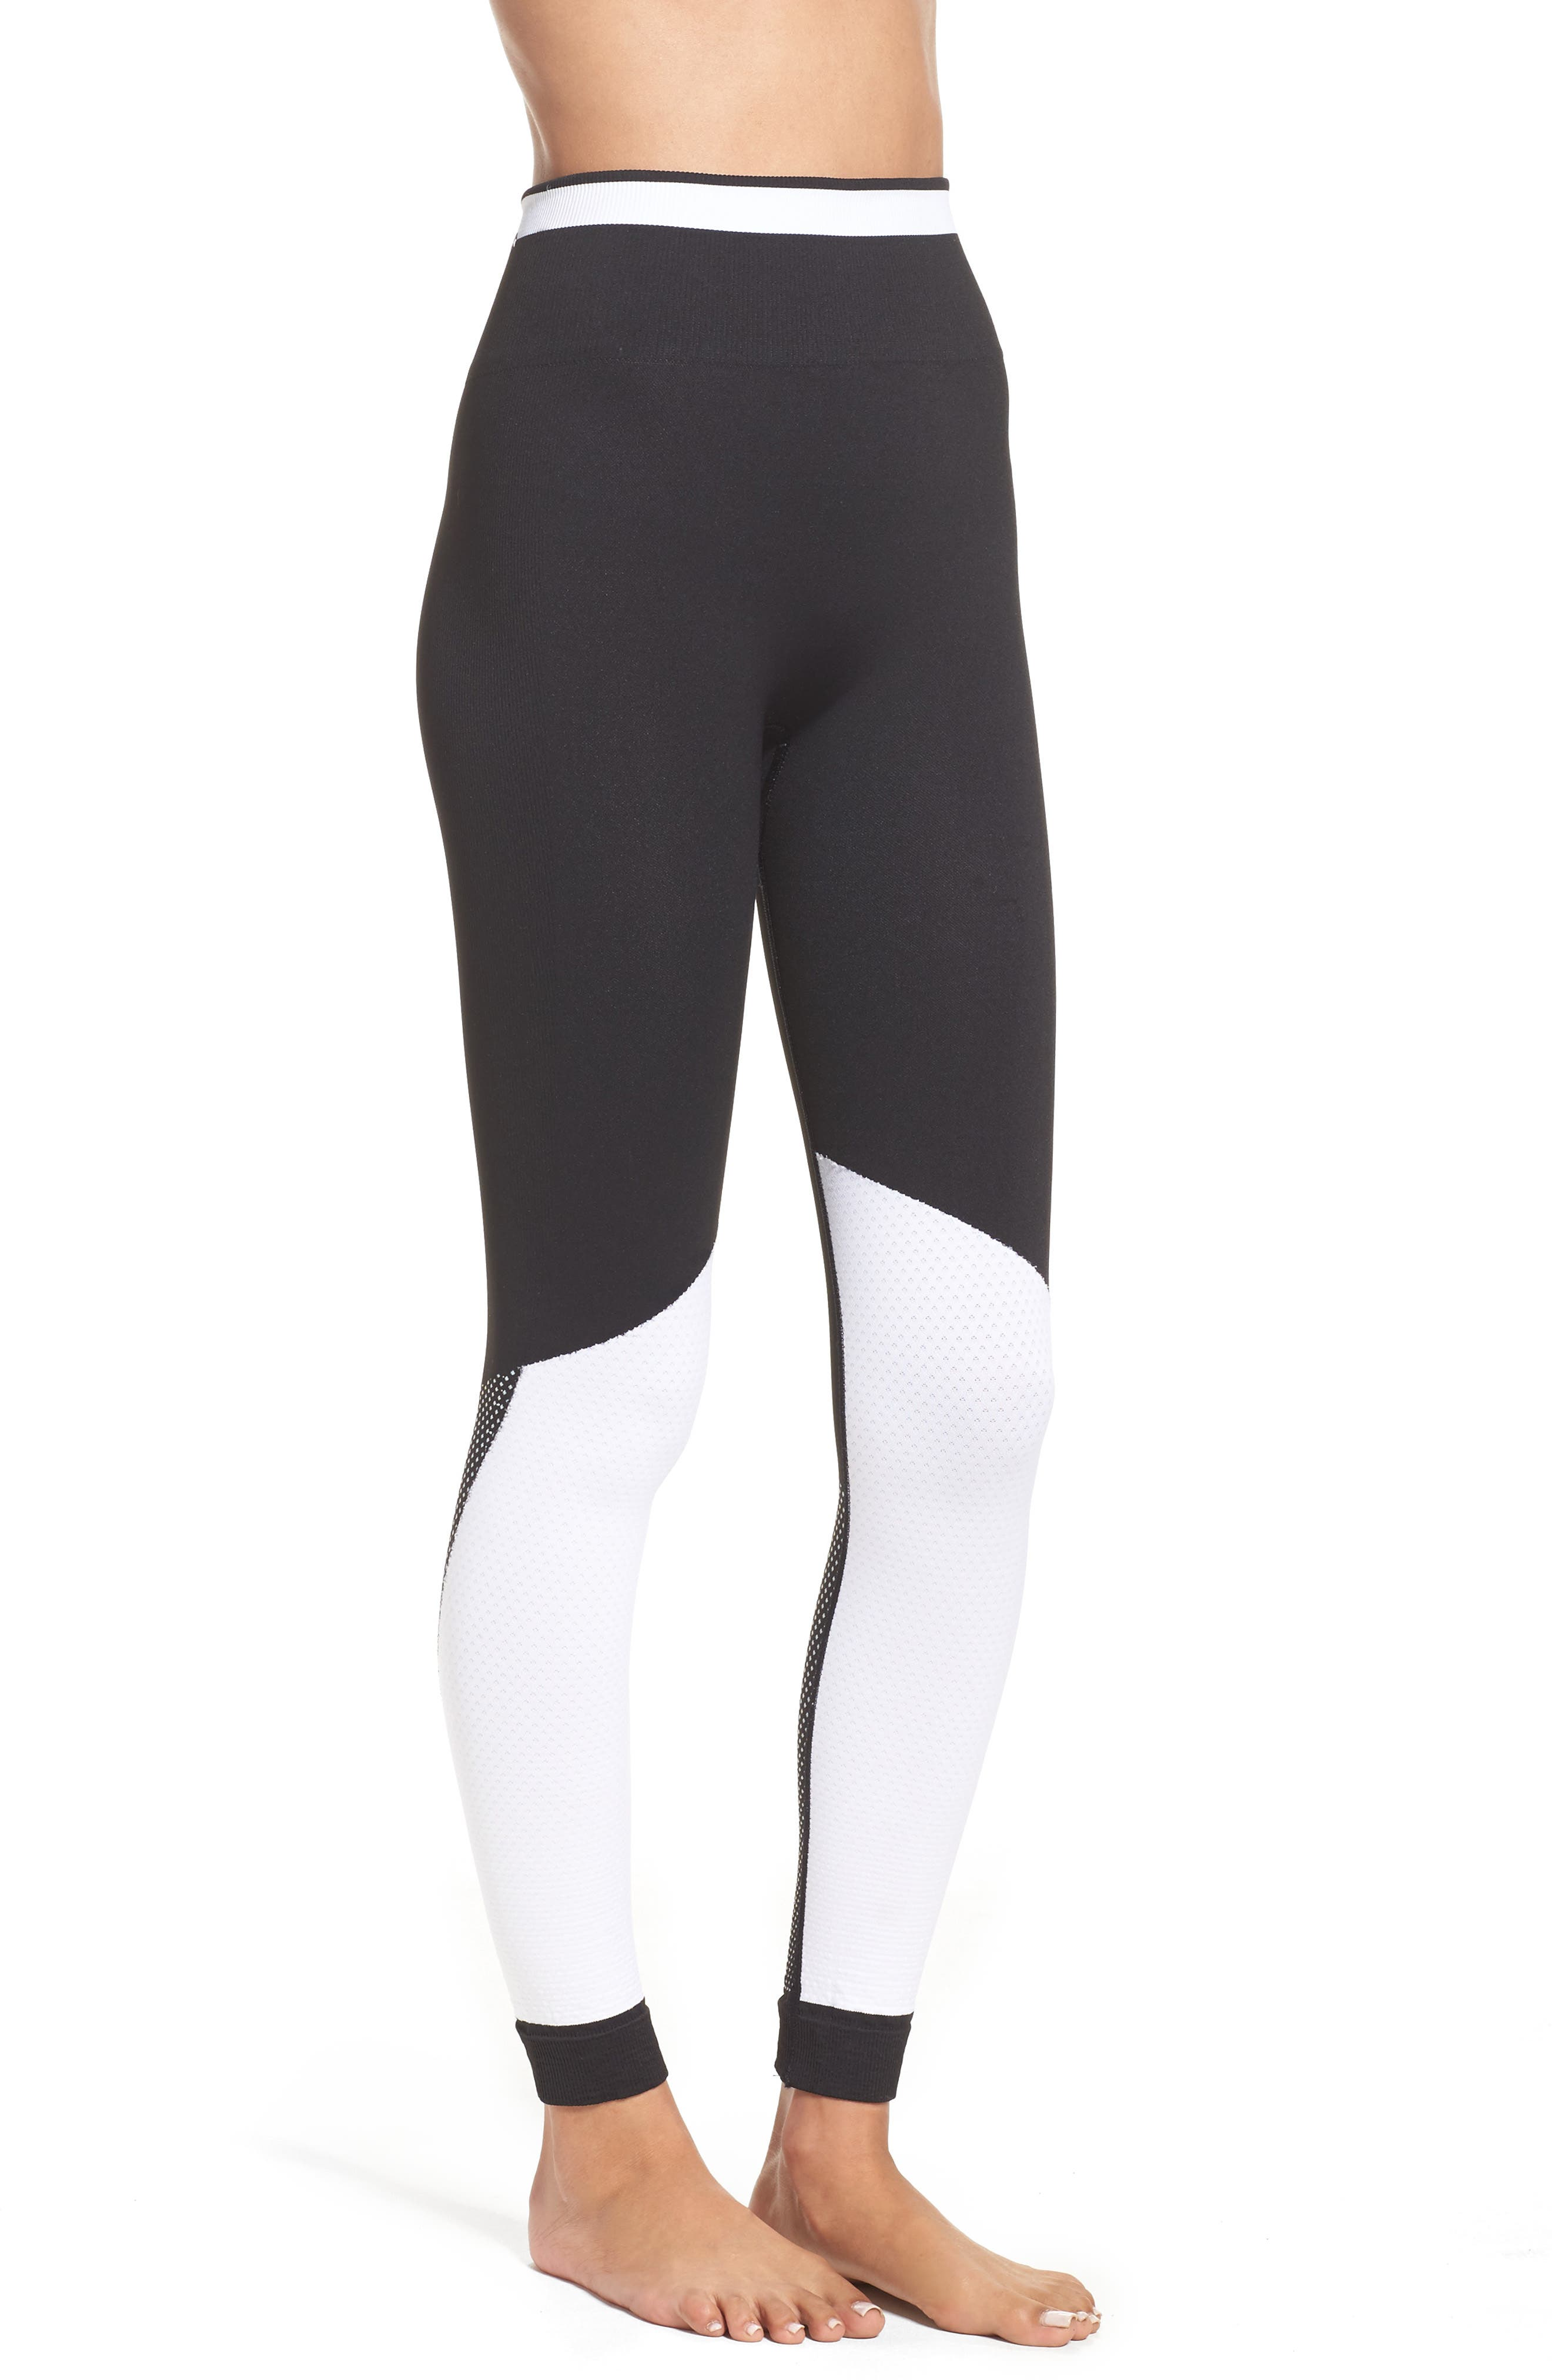 Ace Performance Tights,                             Alternate thumbnail 6, color,